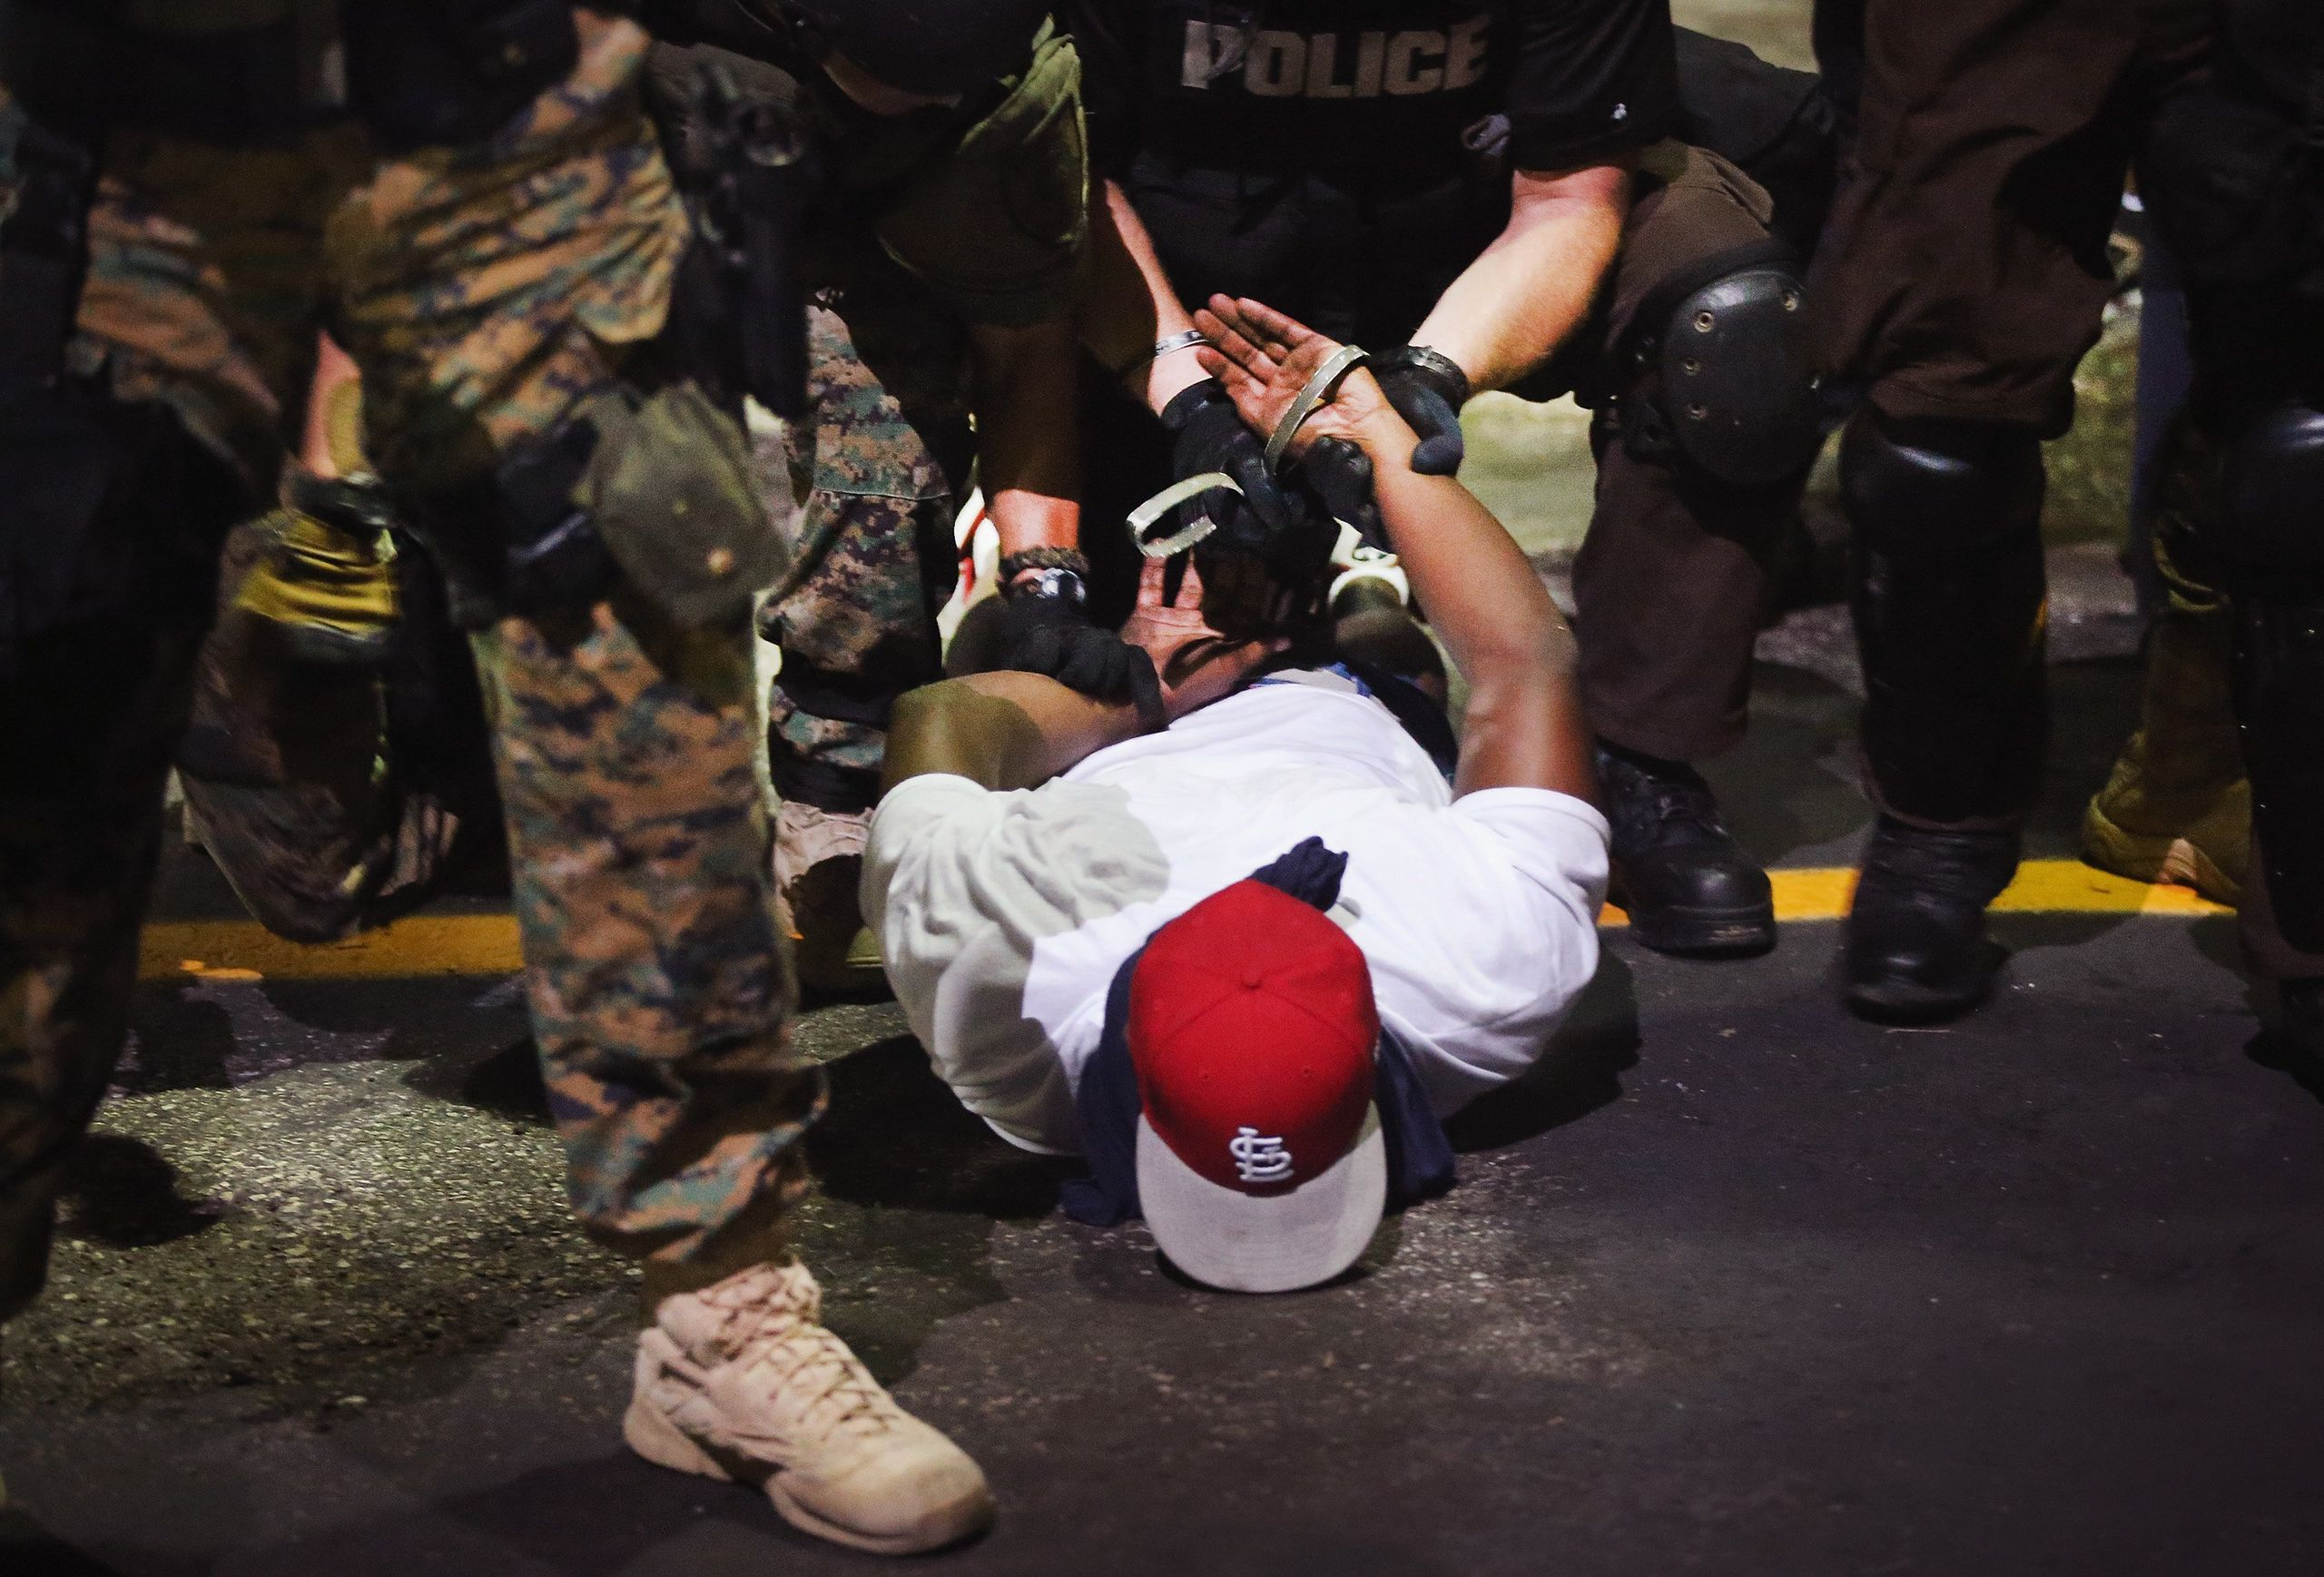 Police arrest a demonstrator in Ferguson on Aug. 19, 2014.